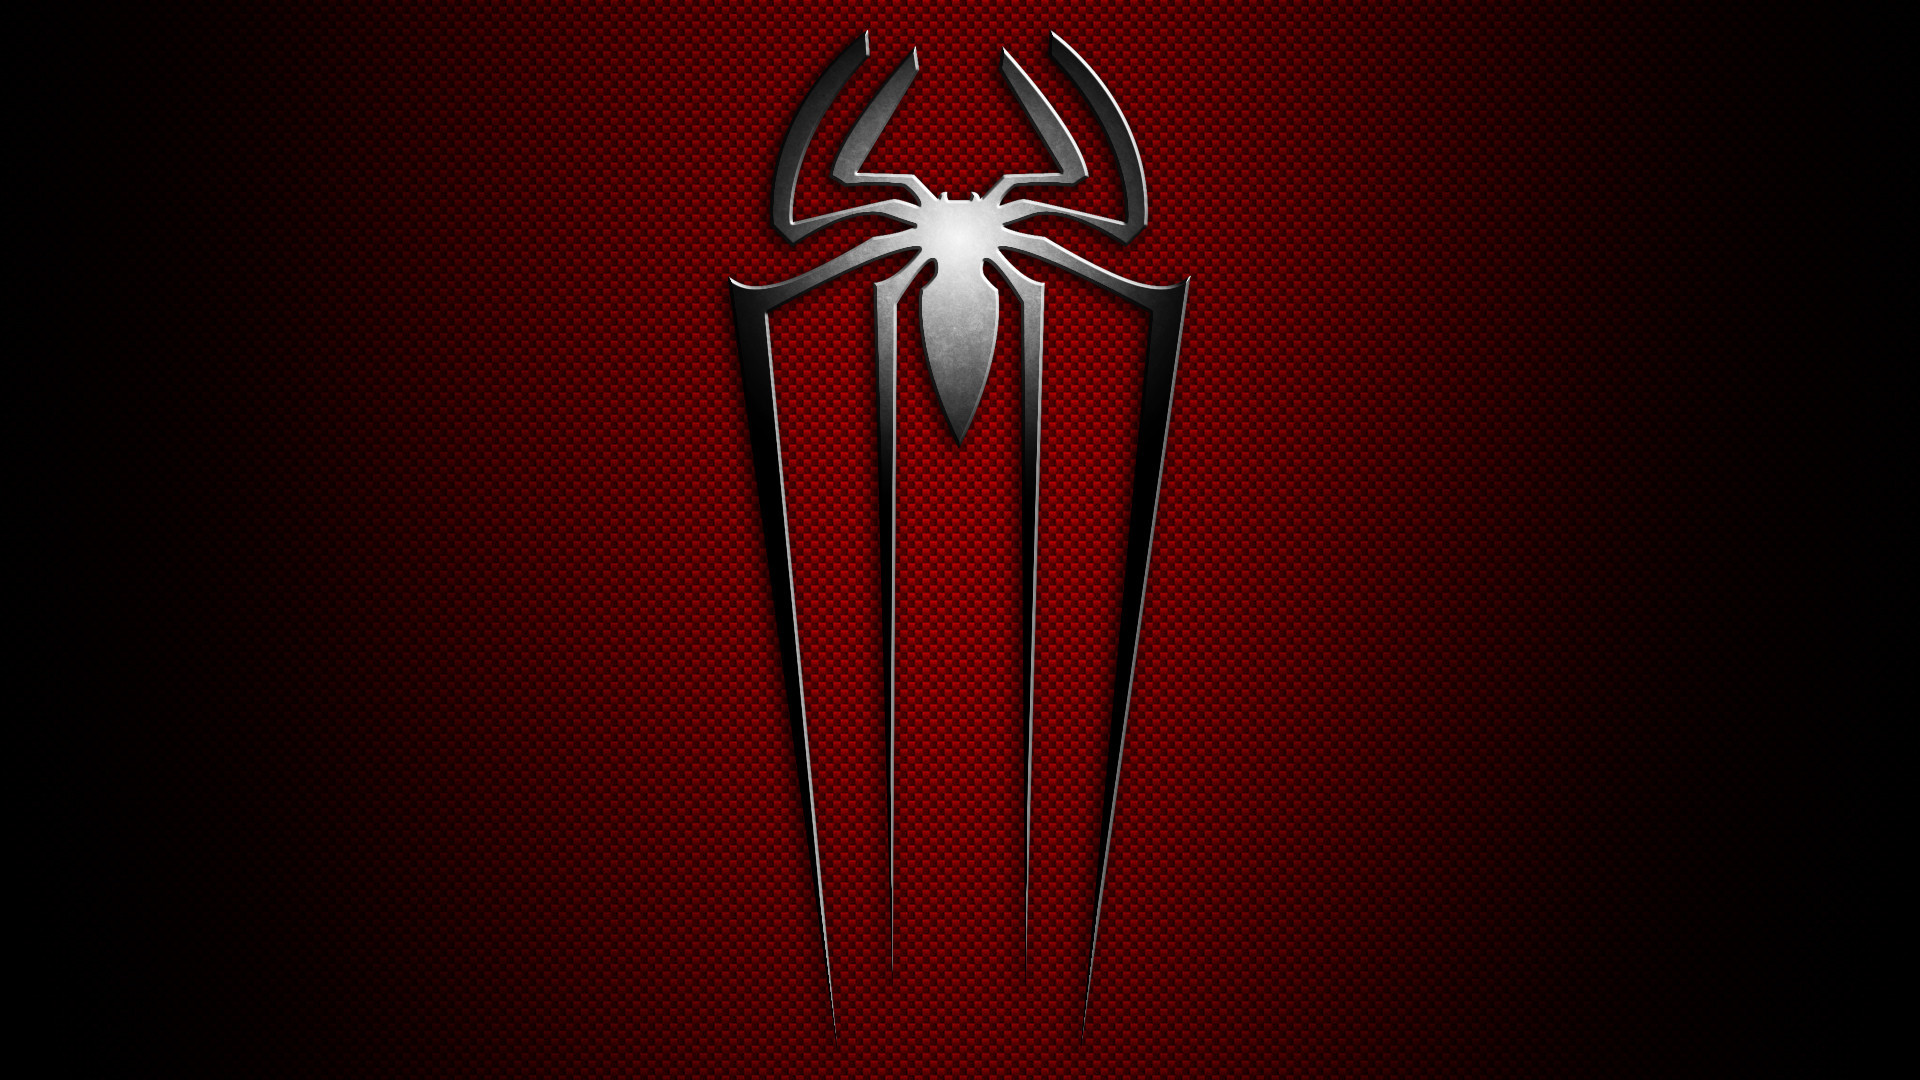 spider man logo wallpapers ·①